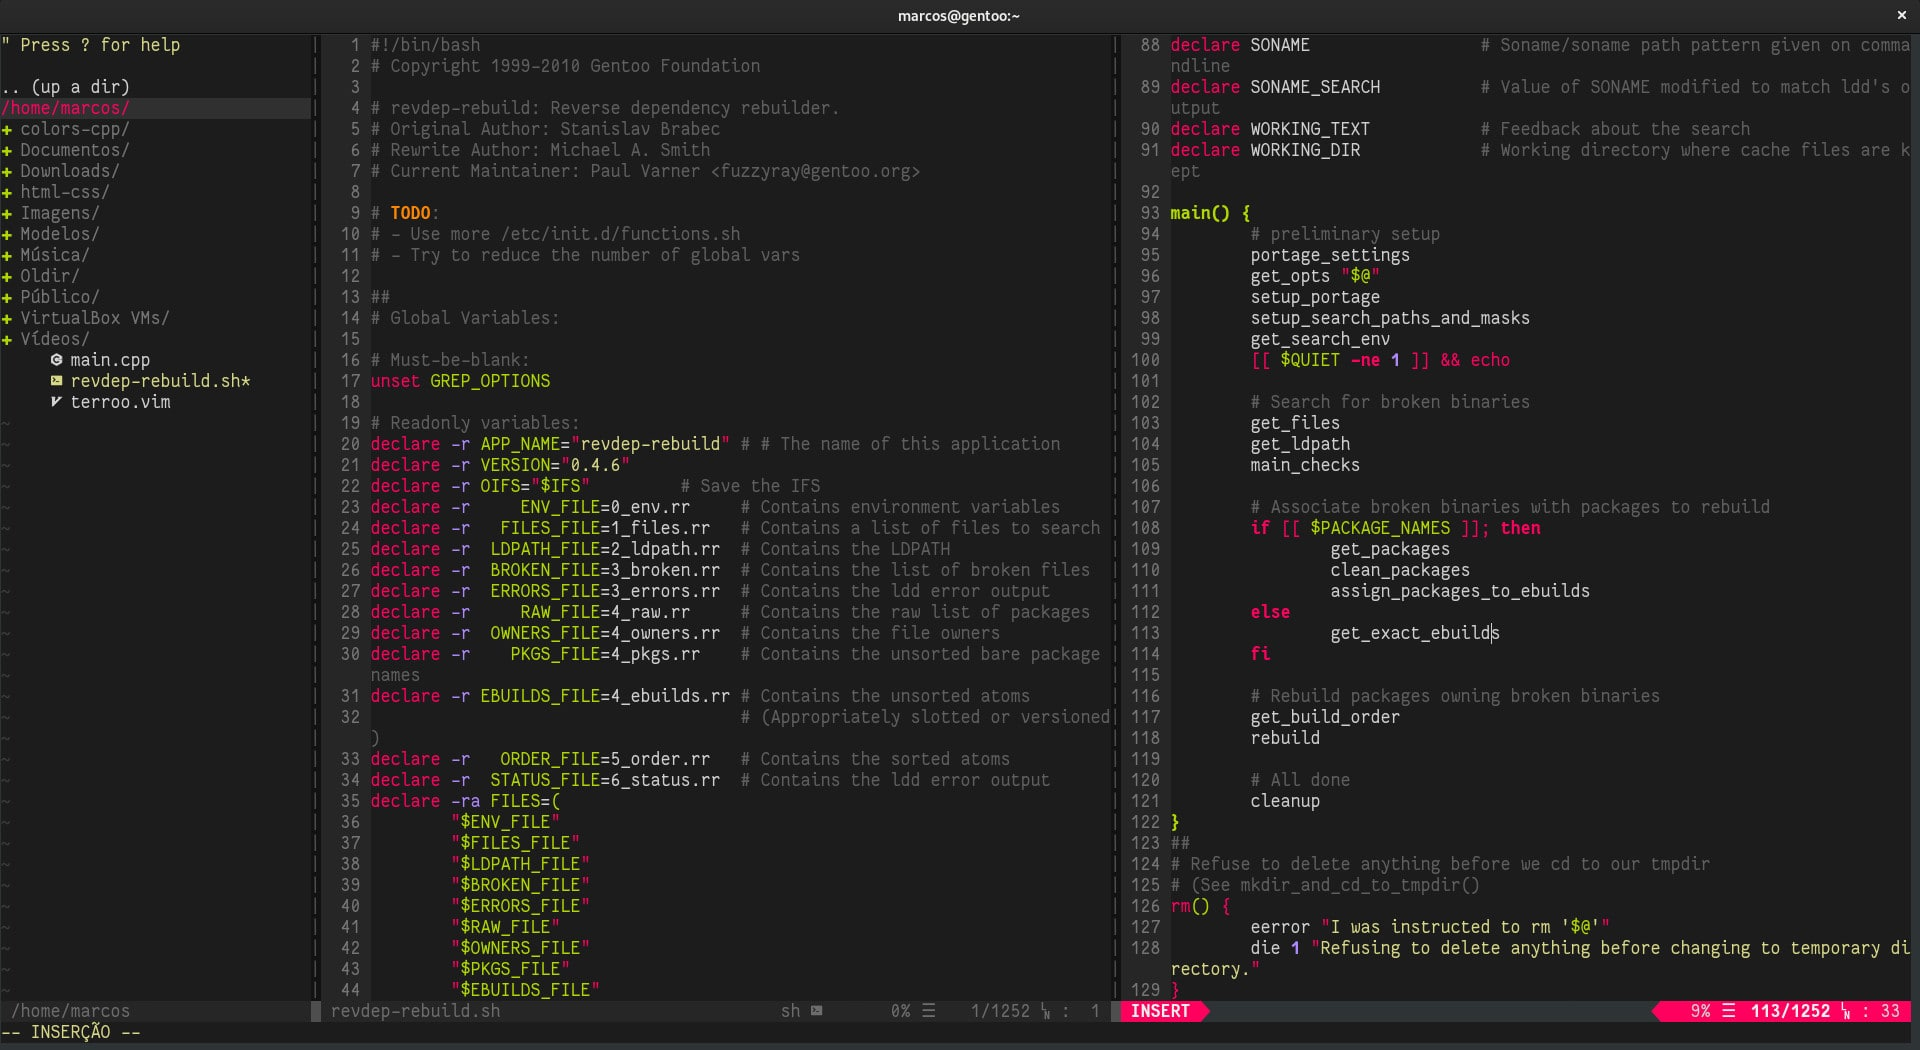 Instale o colorscheme Terroo Colors no seu Vim